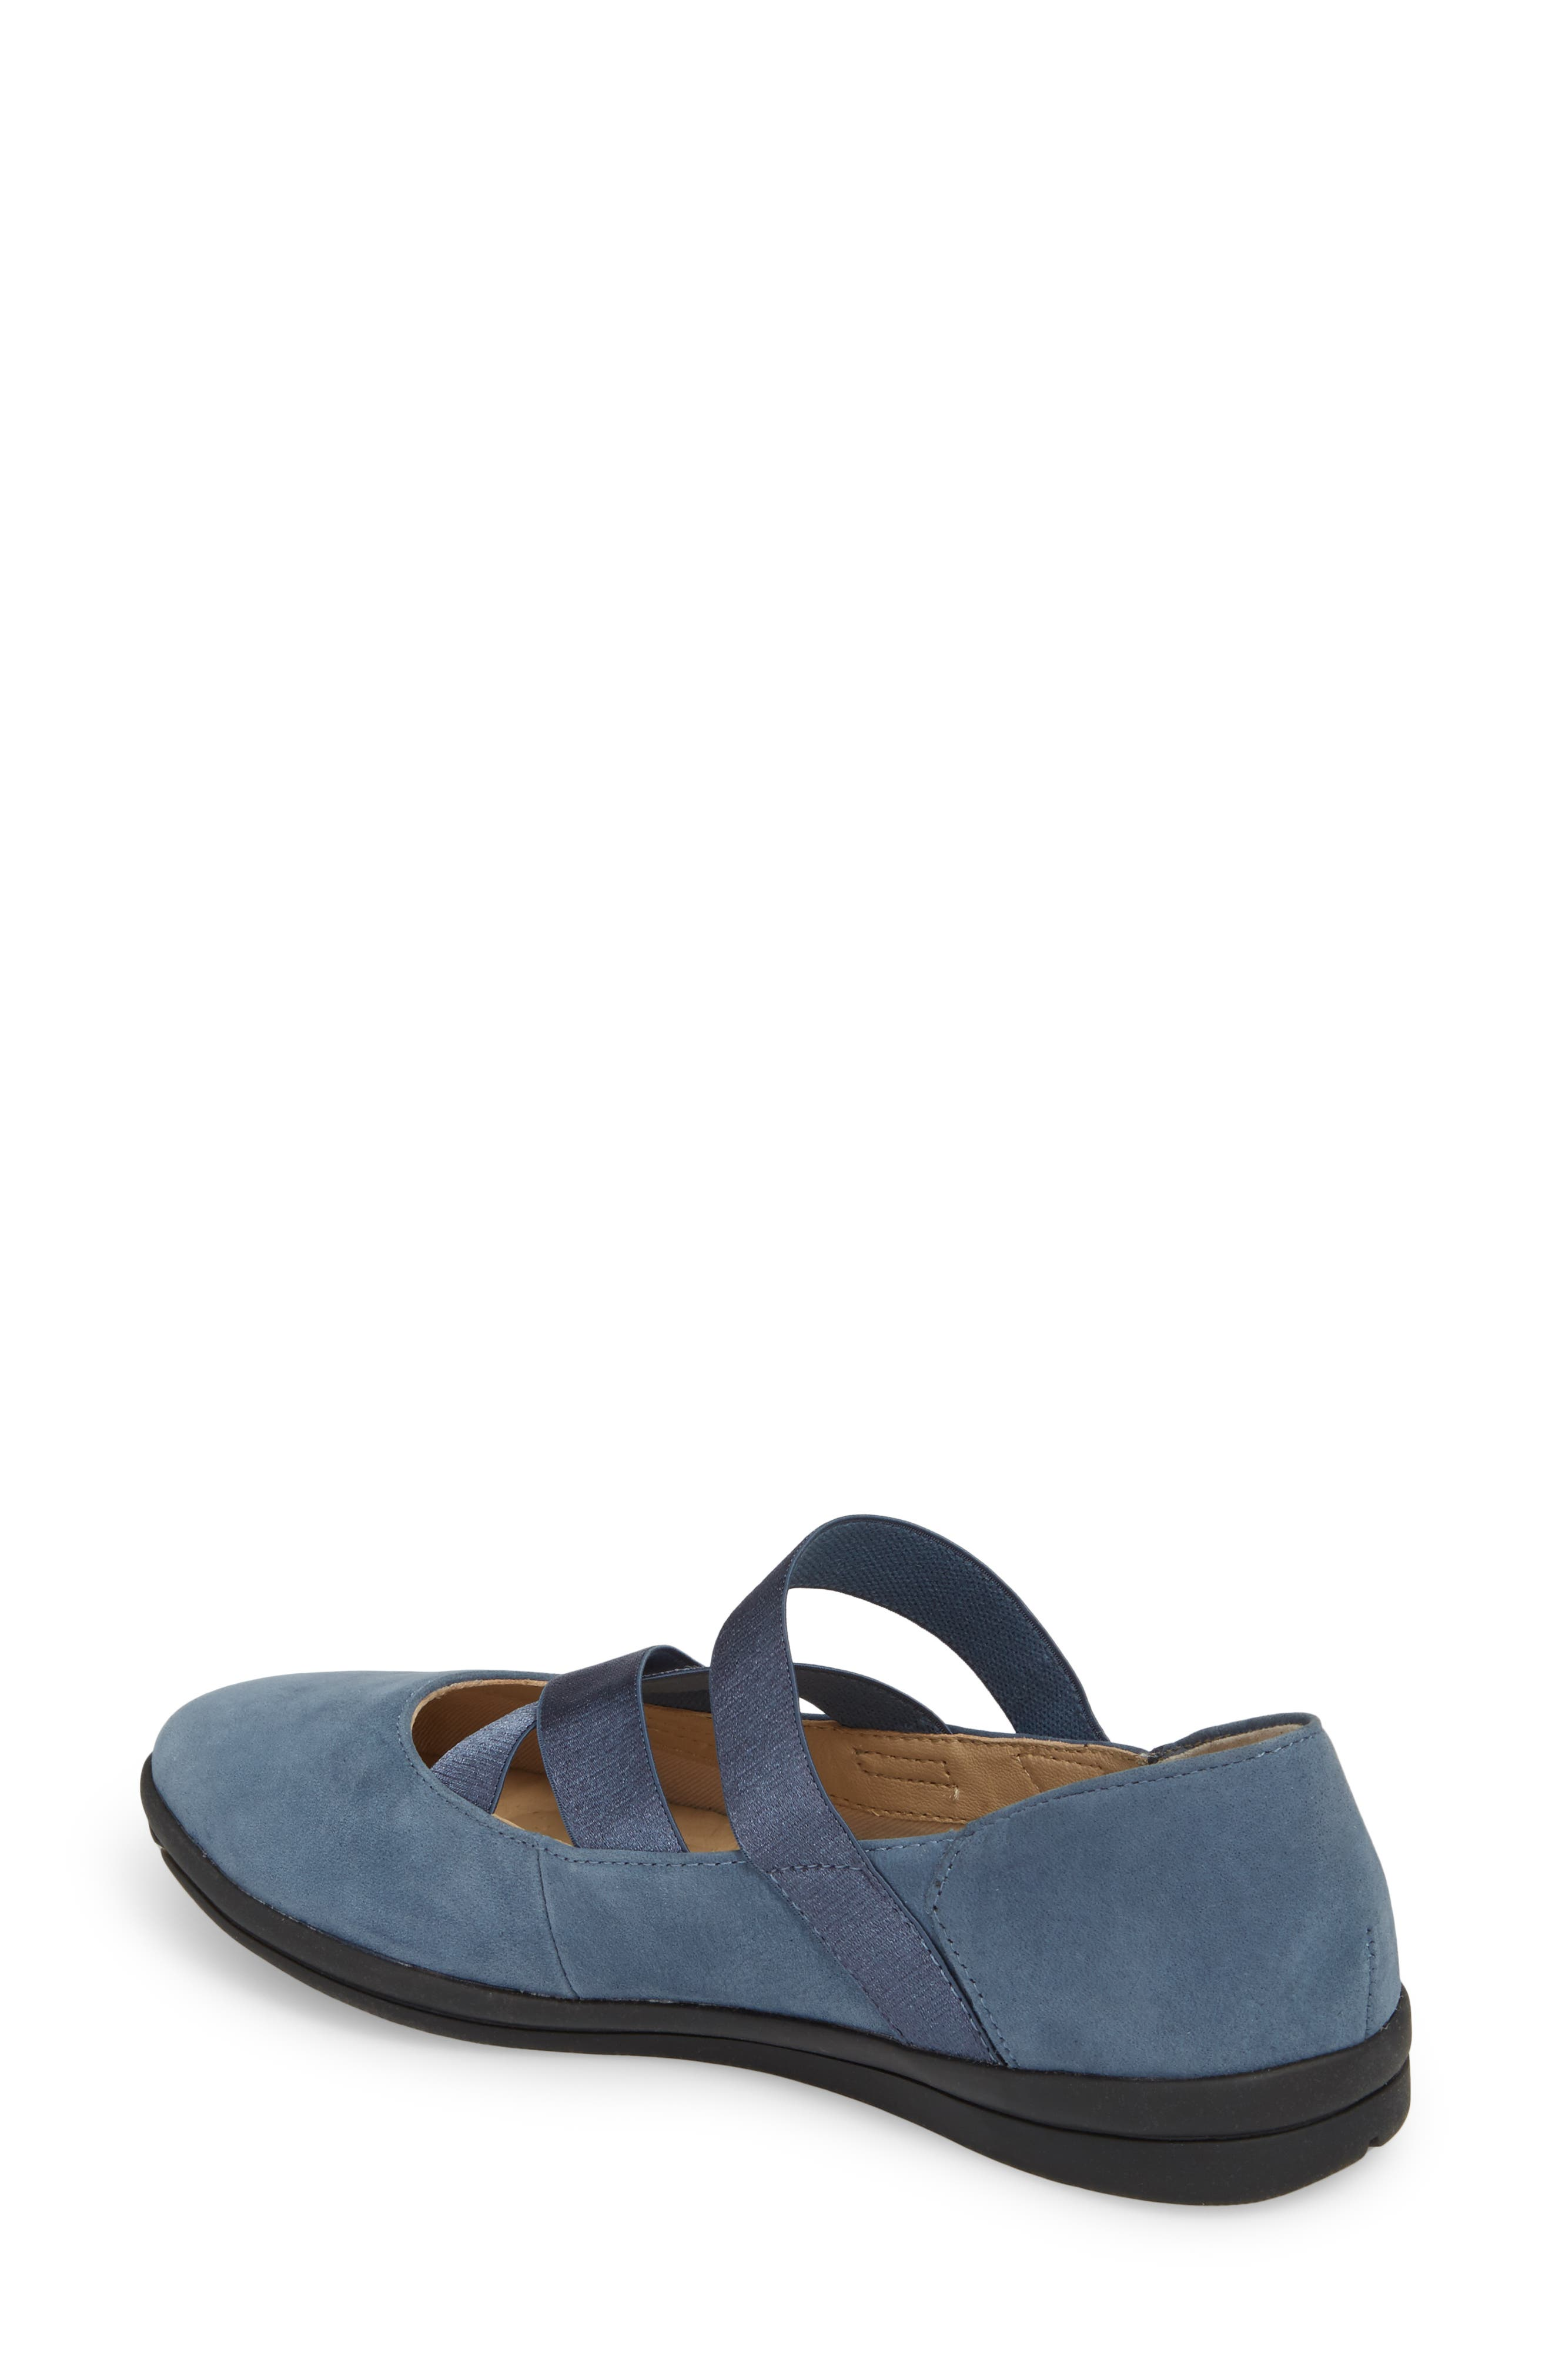 Meree Madrine Cross Strap Flat,                             Alternate thumbnail 7, color,